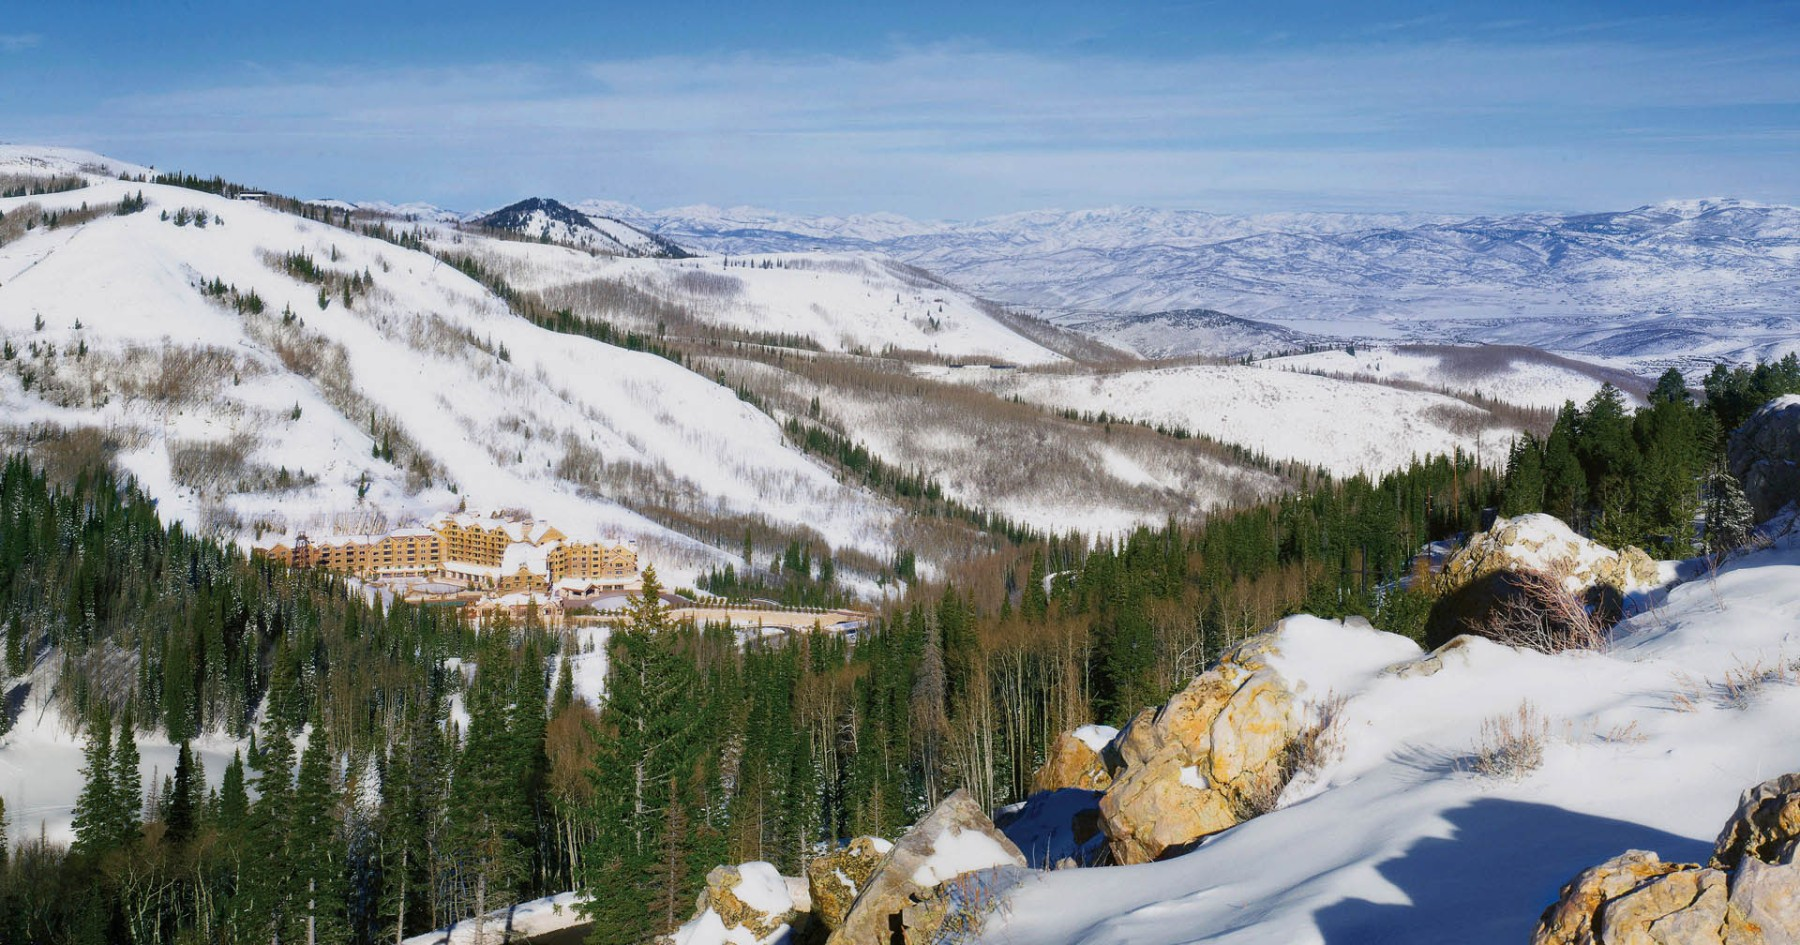 Six Ski Lodges So Swanky You'll Forget to Hit the Slopes